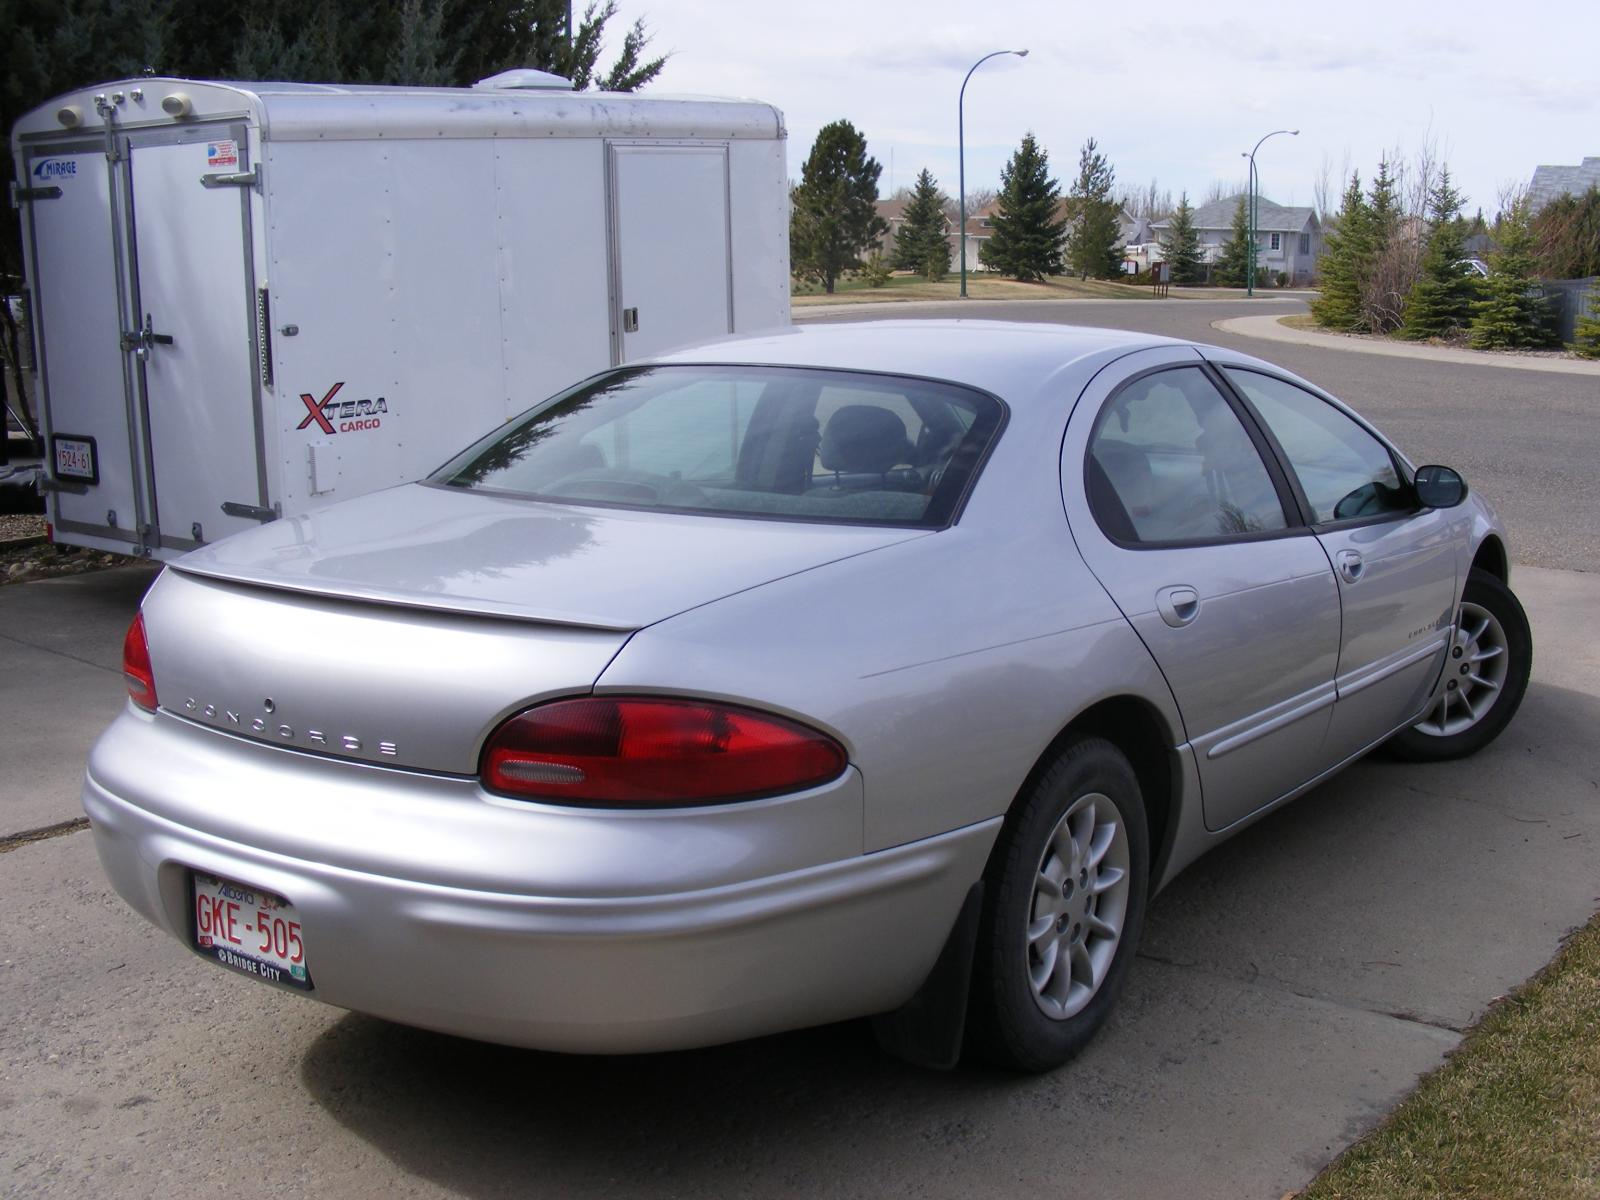 1998 chrysler concorde information and photos zombiedrive. Cars Review. Best American Auto & Cars Review